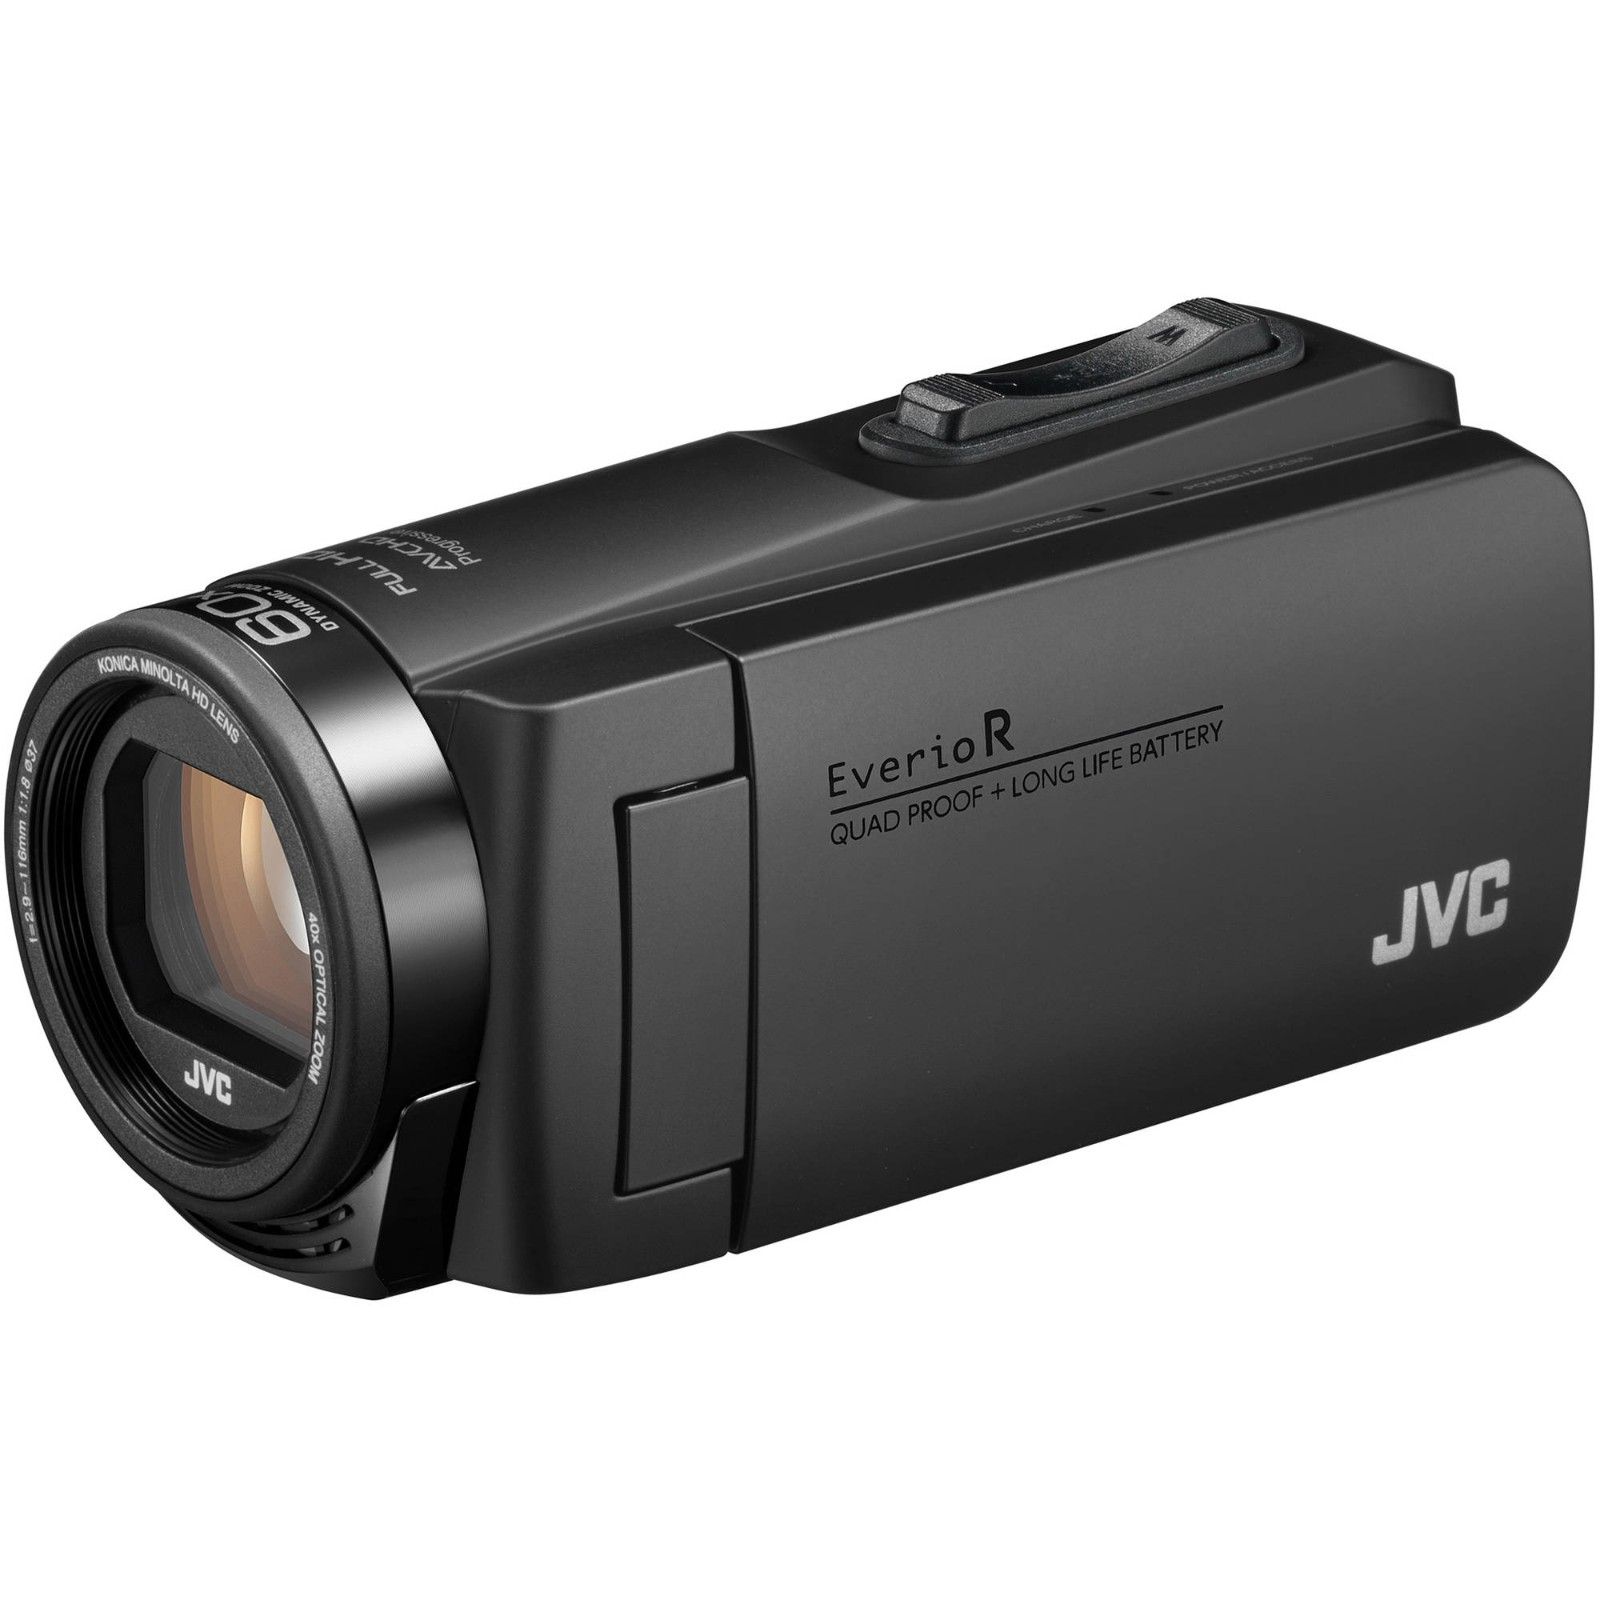 JVC Everio Quad Proof 32GB 1080p HD Video Camera Camcorder